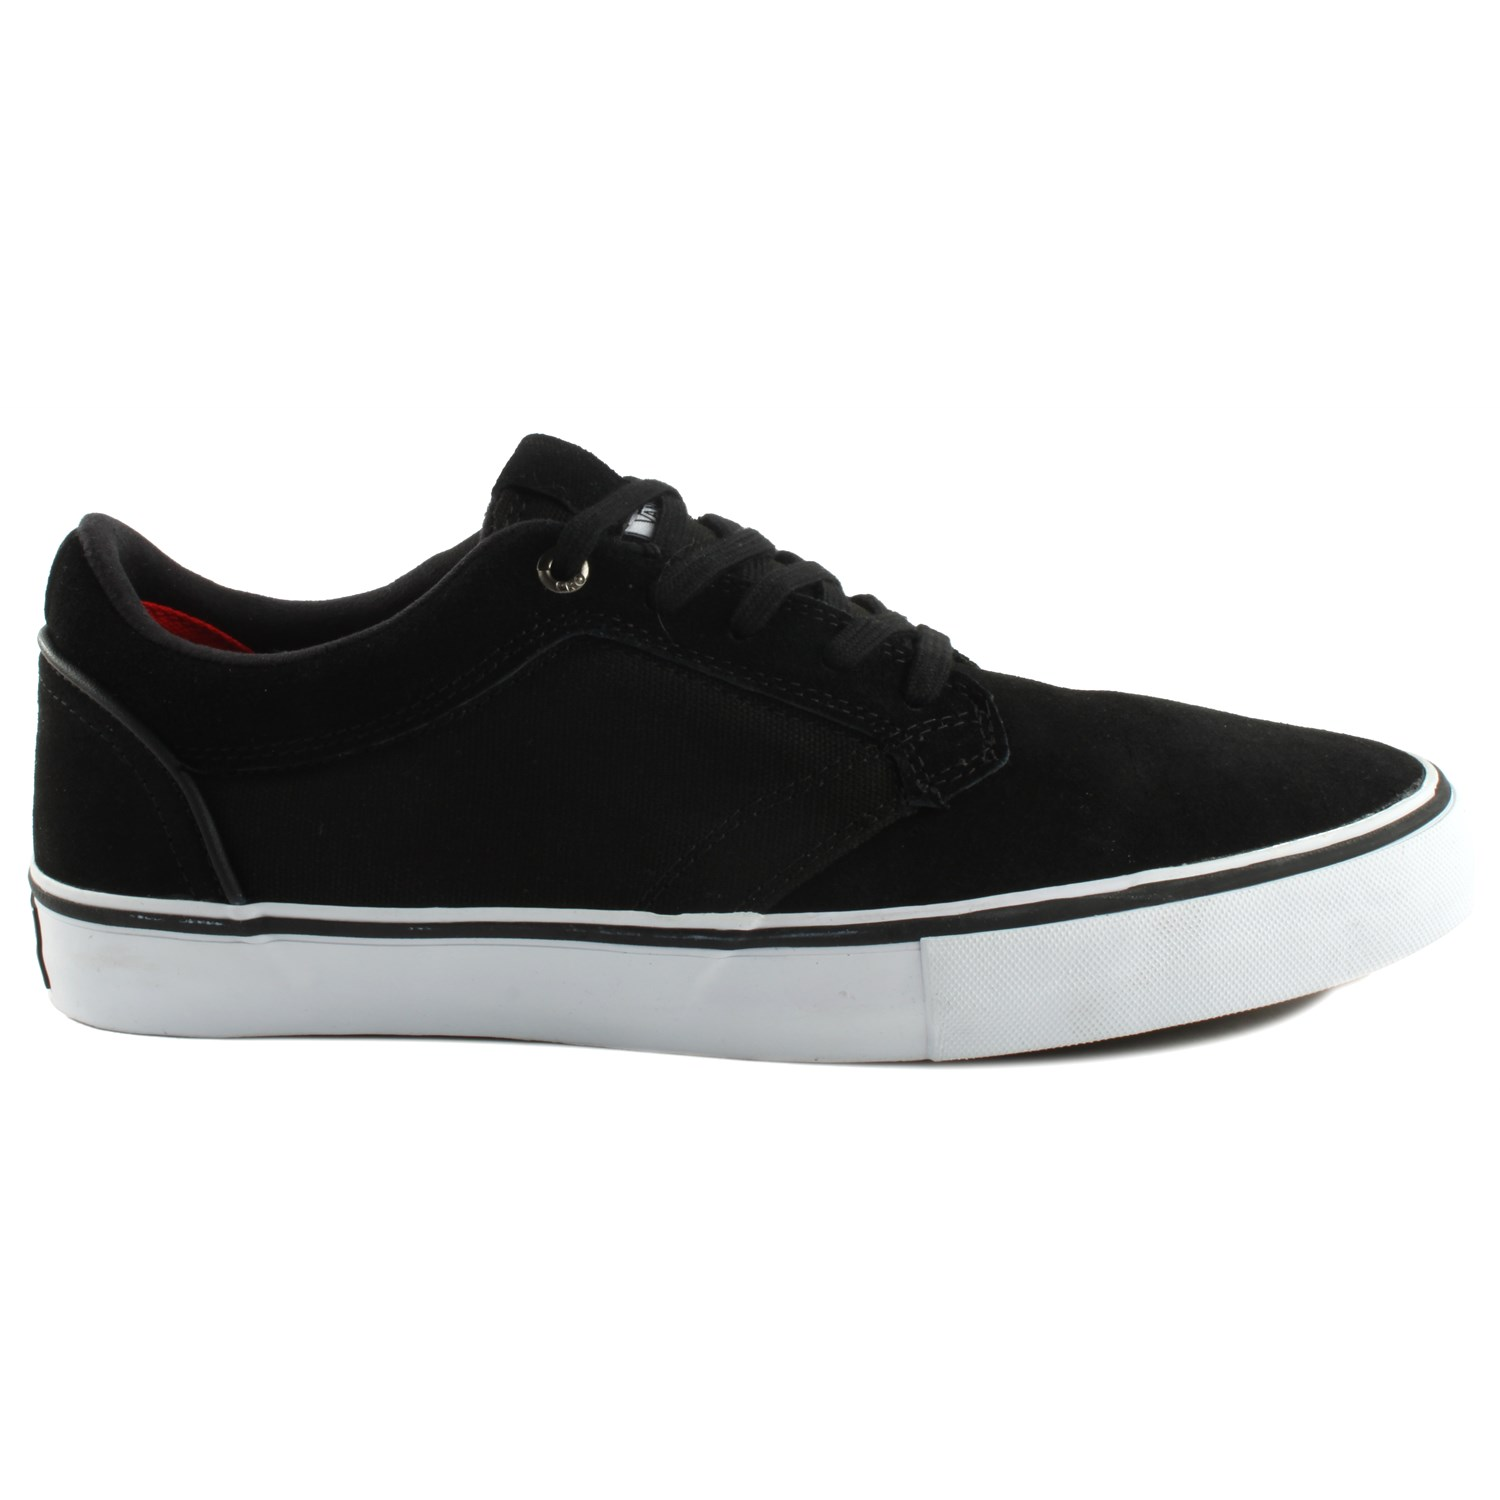 4209077d7279 Vans Type II Shoes